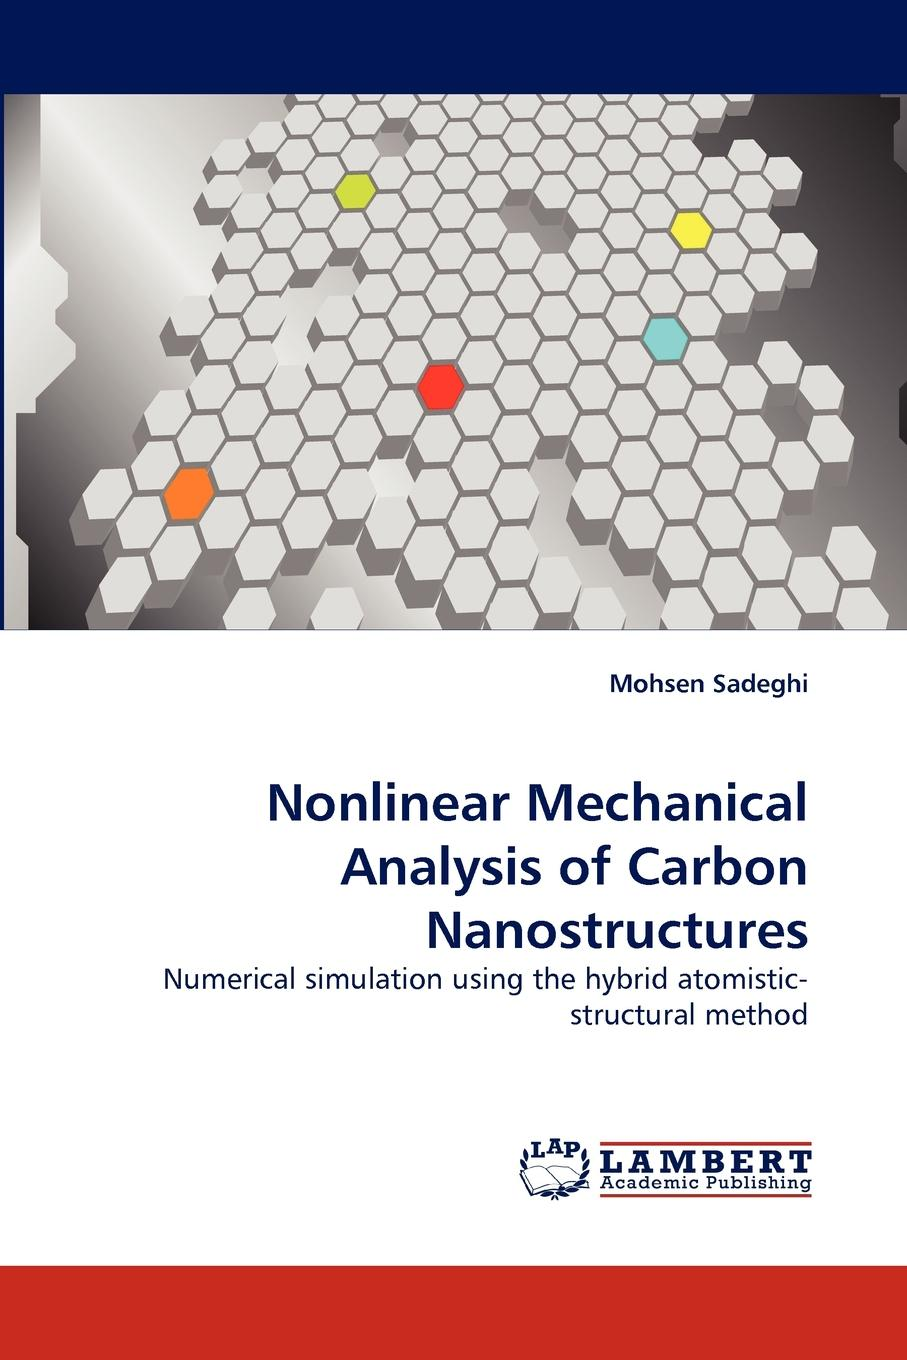 Mohsen Sadeghi Nonlinear Mechanical Analysis of Carbon Nanostructures tamer becherrawy mechanical and electromagnetic vibrations and waves